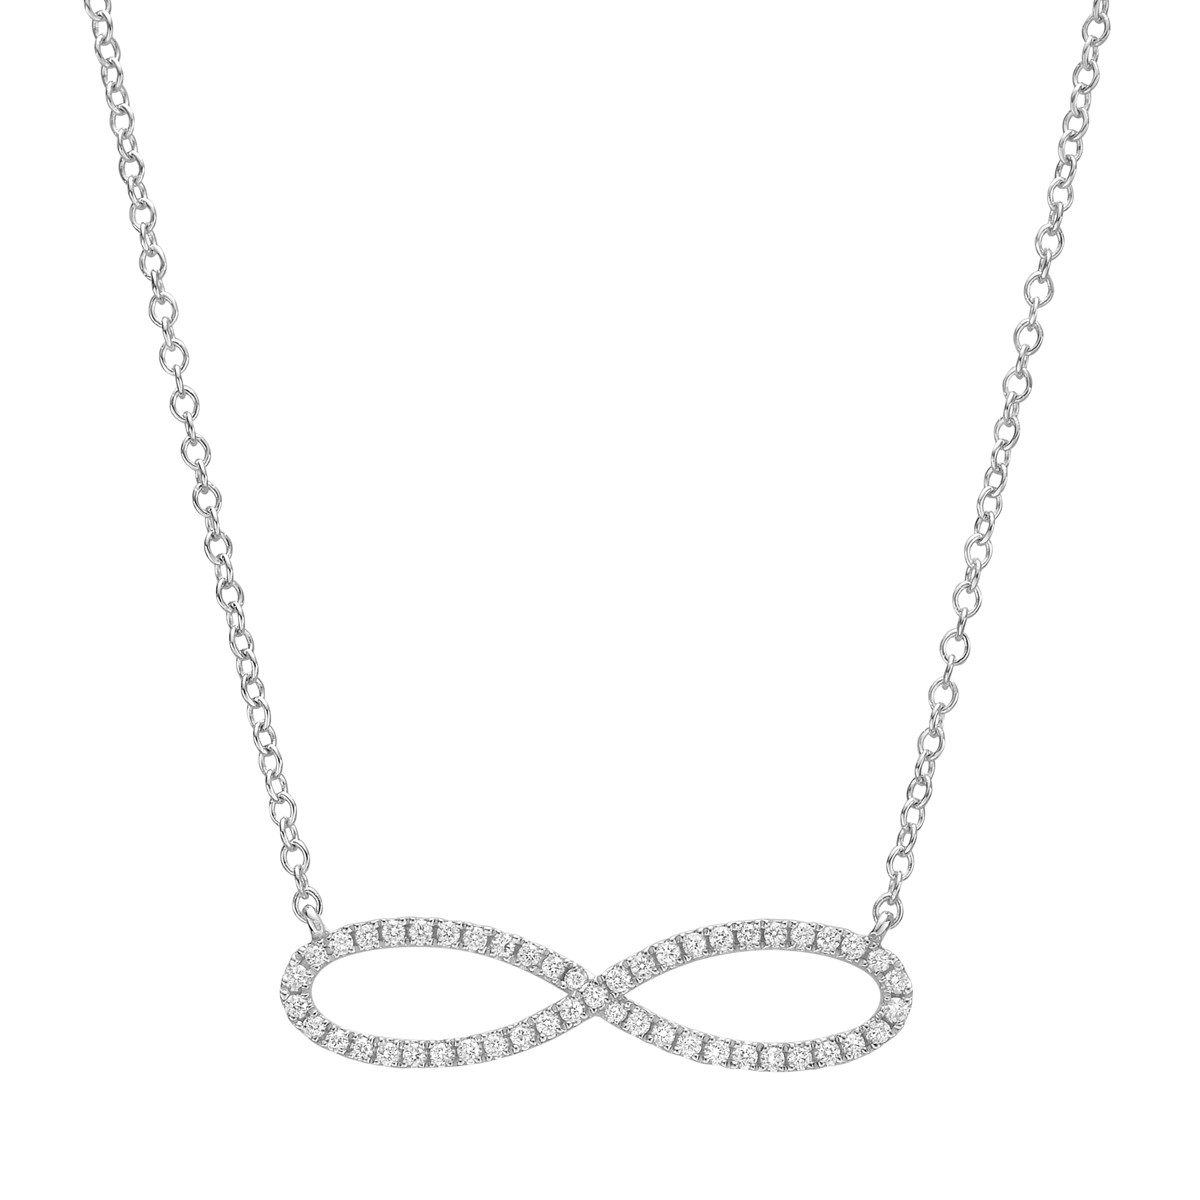 18k White Gold & Diamond Infinity Pendant